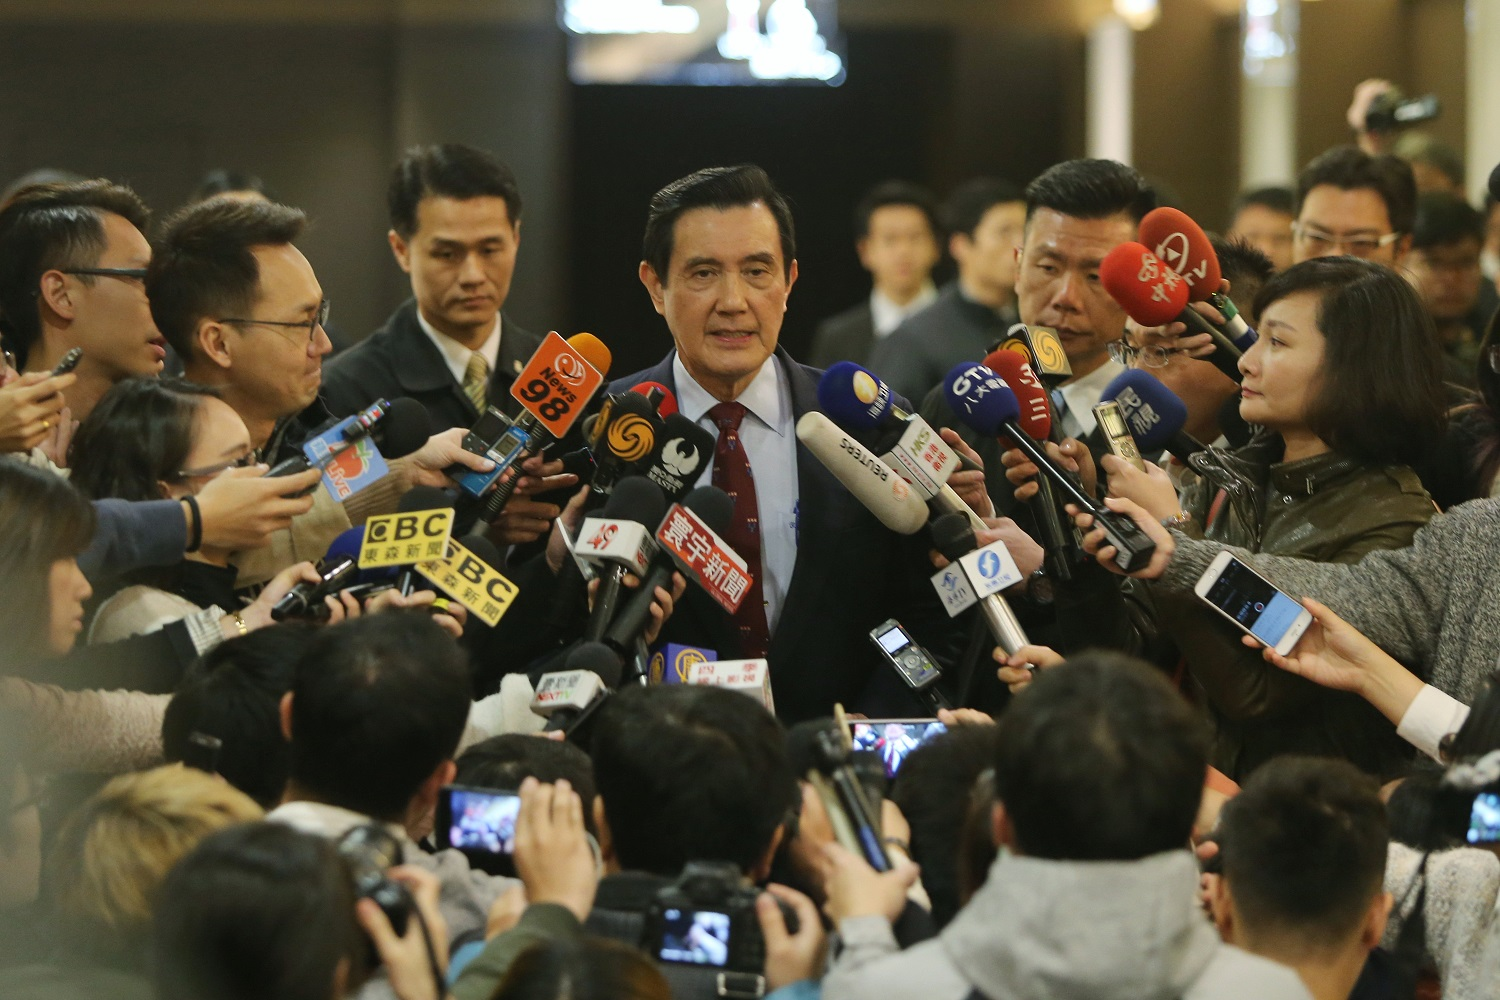 Former President Ma Ying-jeou fielding questions from reporters Mar. 14, after being indicted for leaking state secrets.